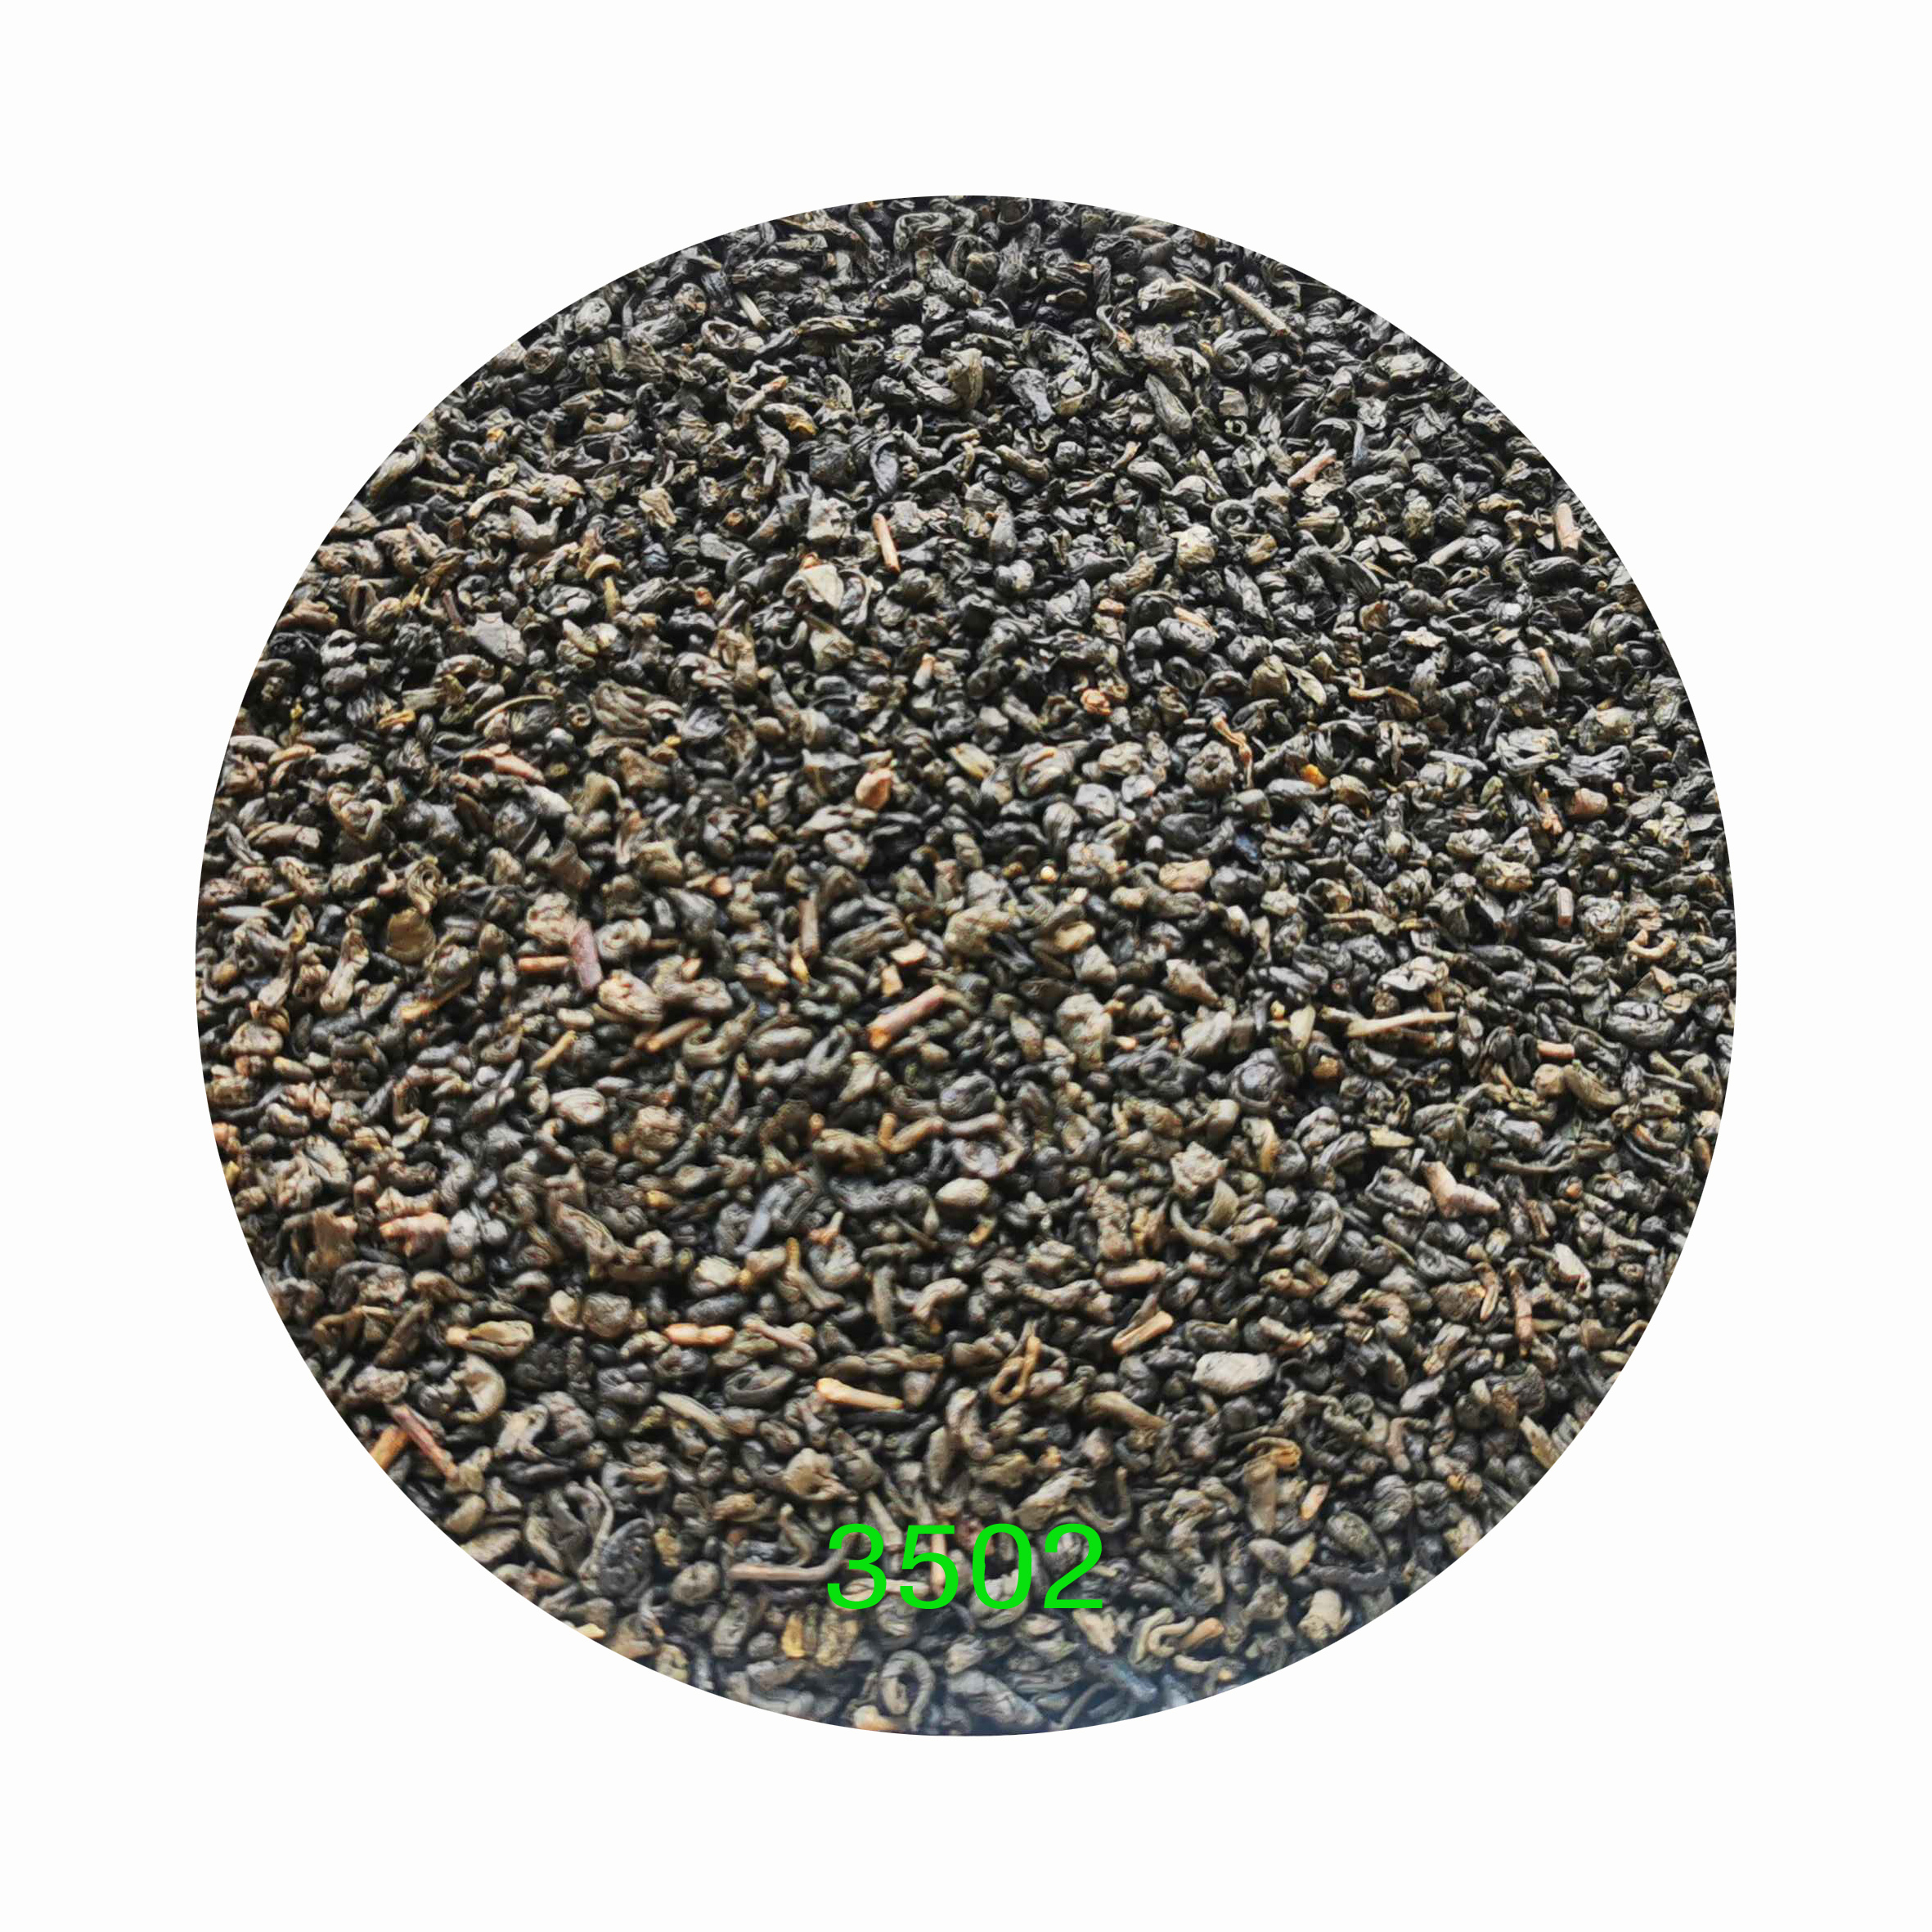 China green tea,Chunmee tea and Gunpowder tea - 4uTea | 4uTea.com